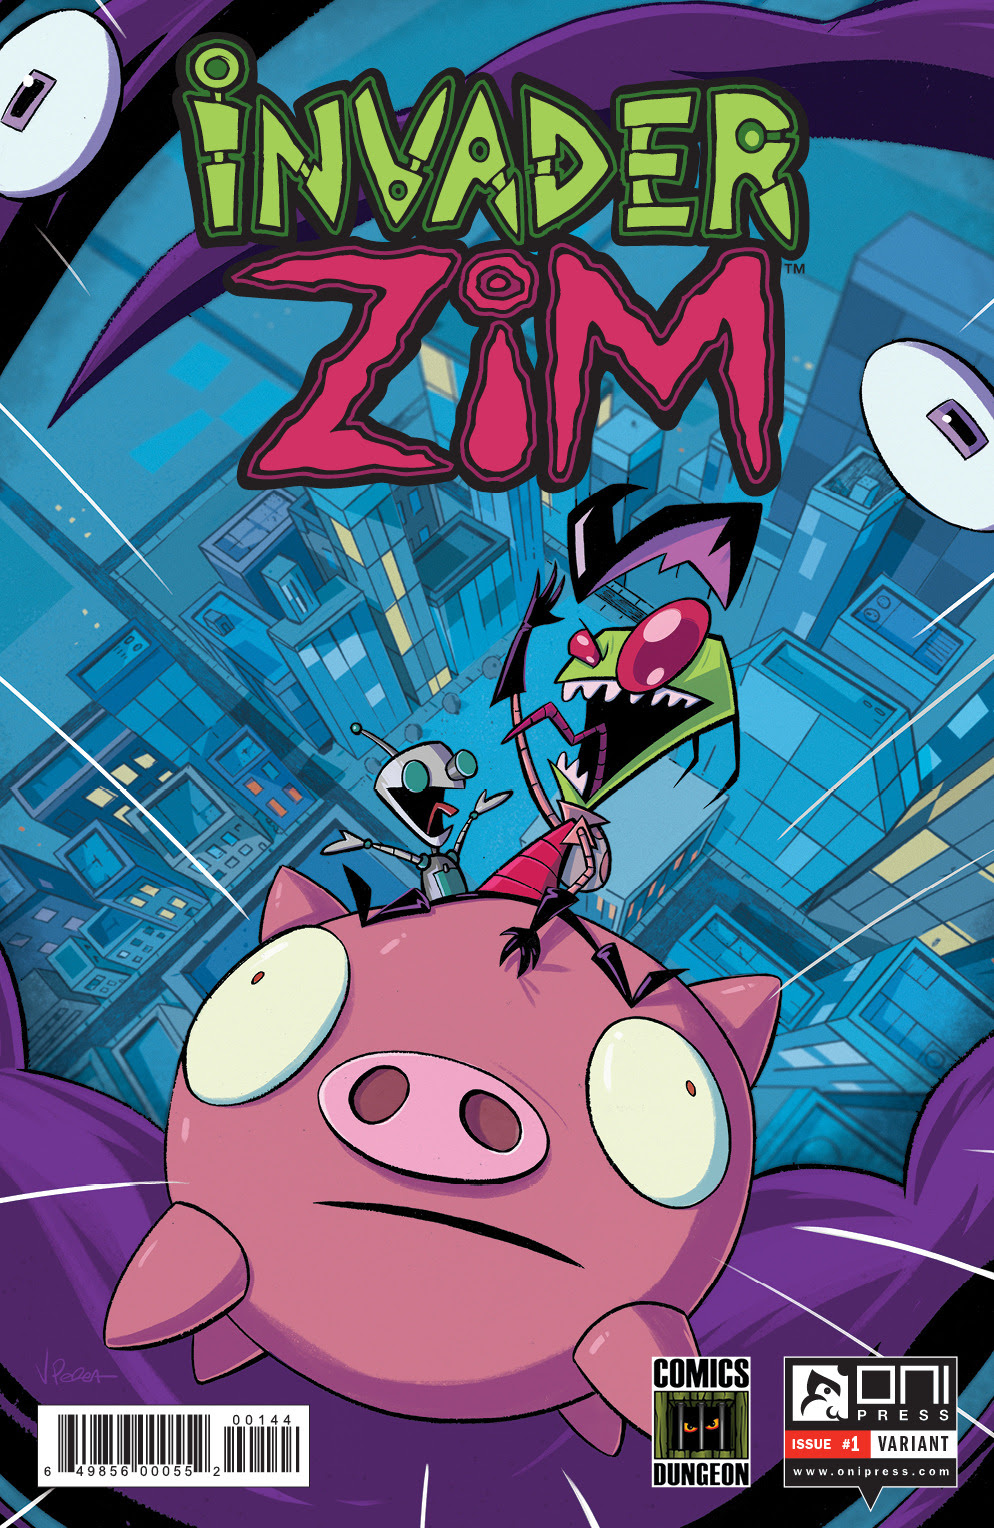 click for more comic book art and more Zim!!